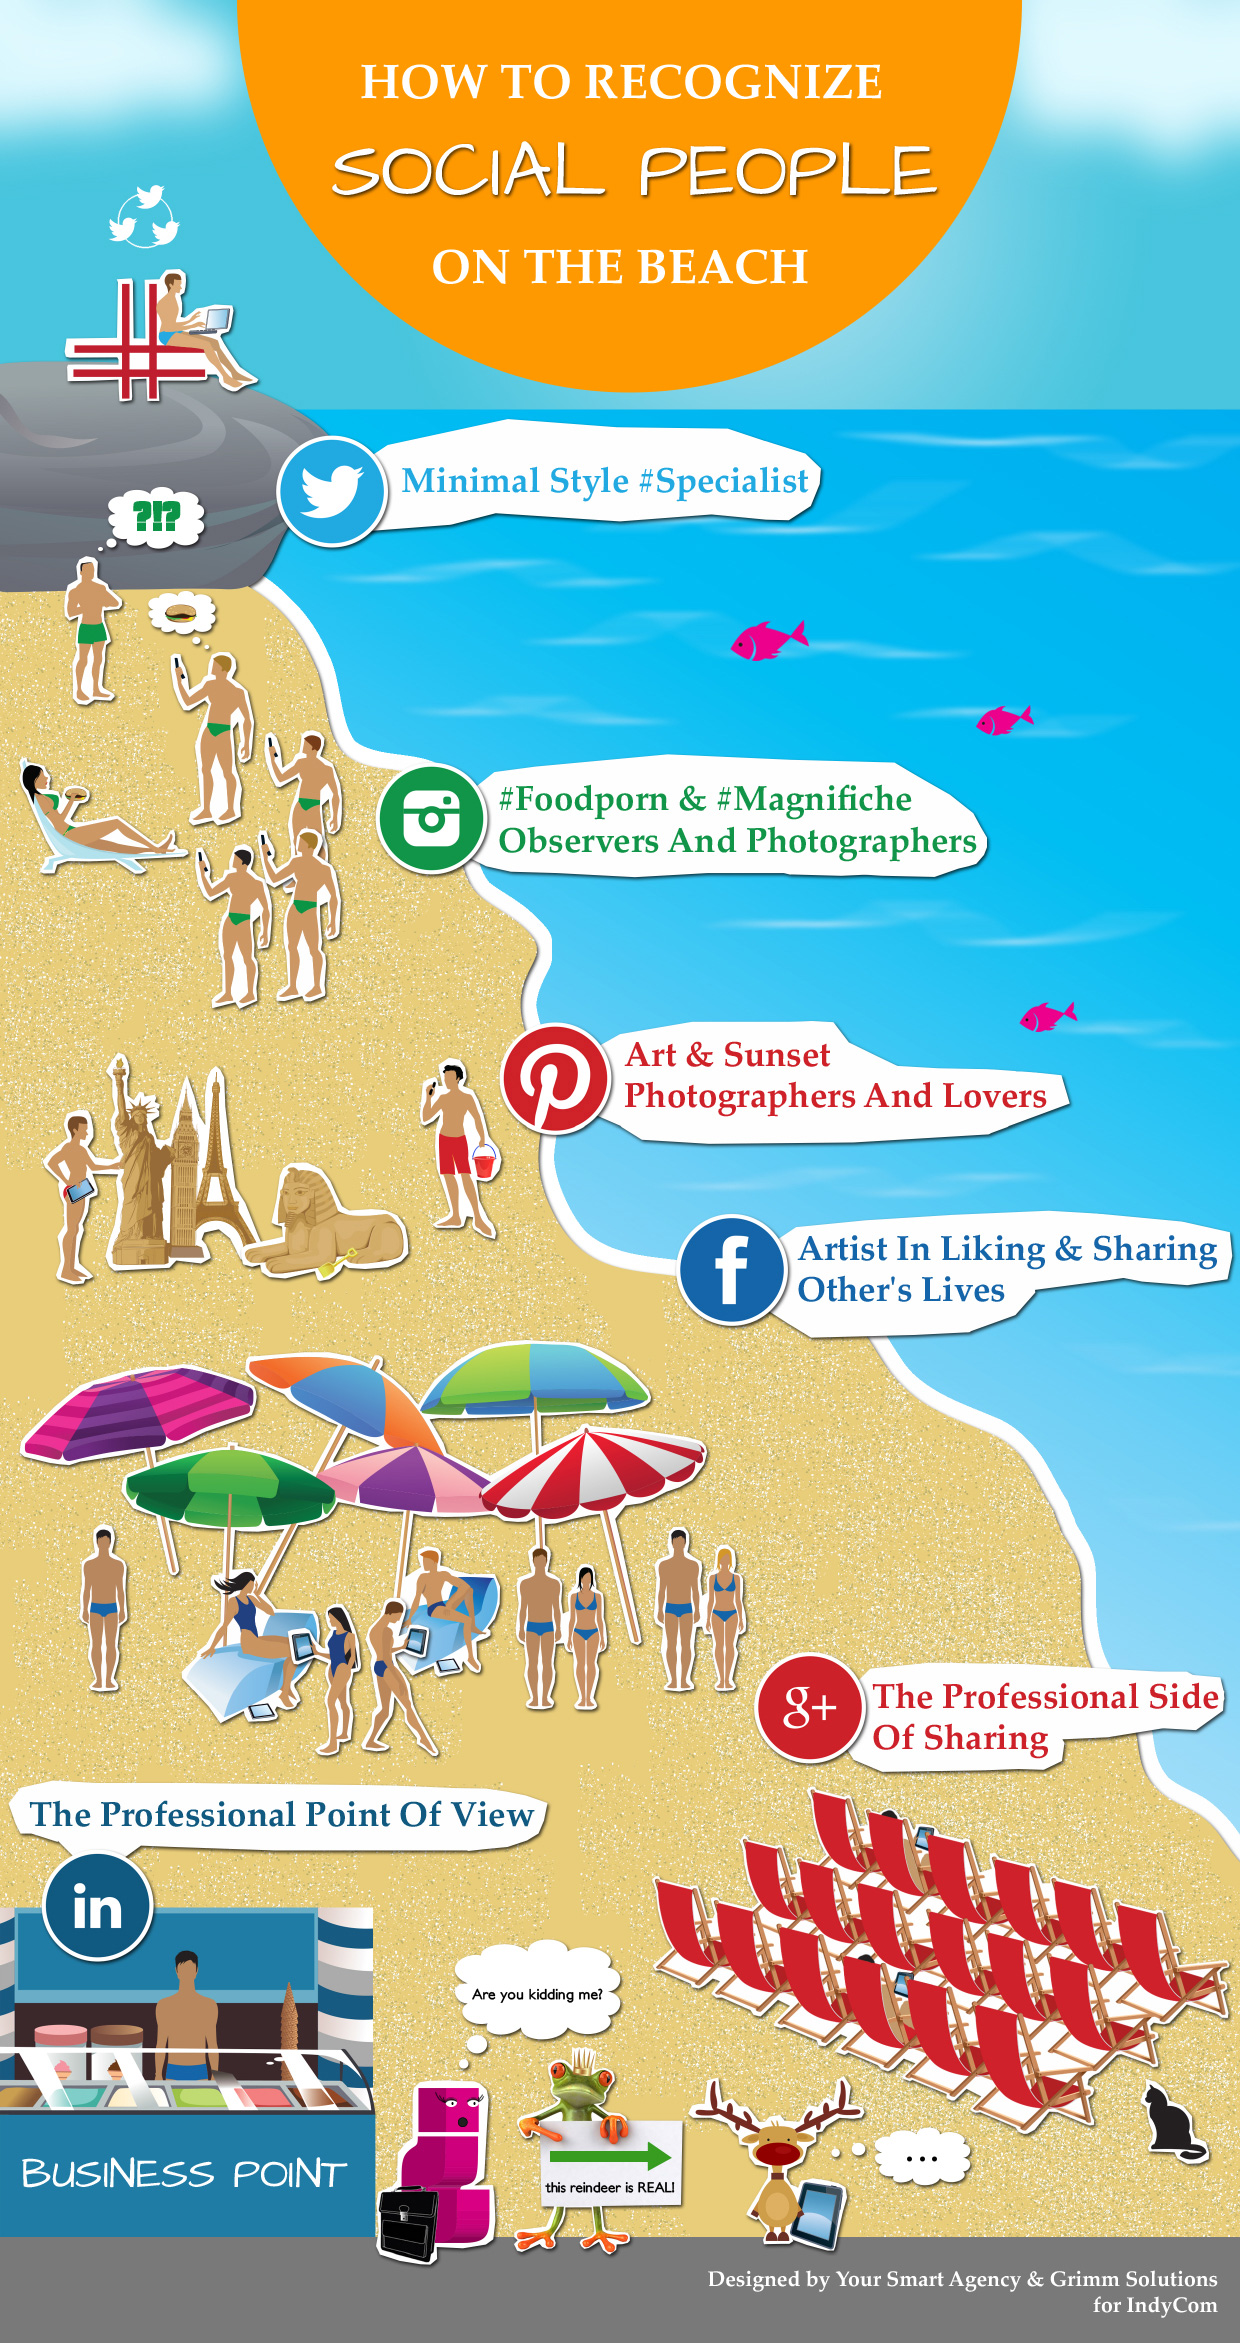 How To Recognize Social People On The Beach